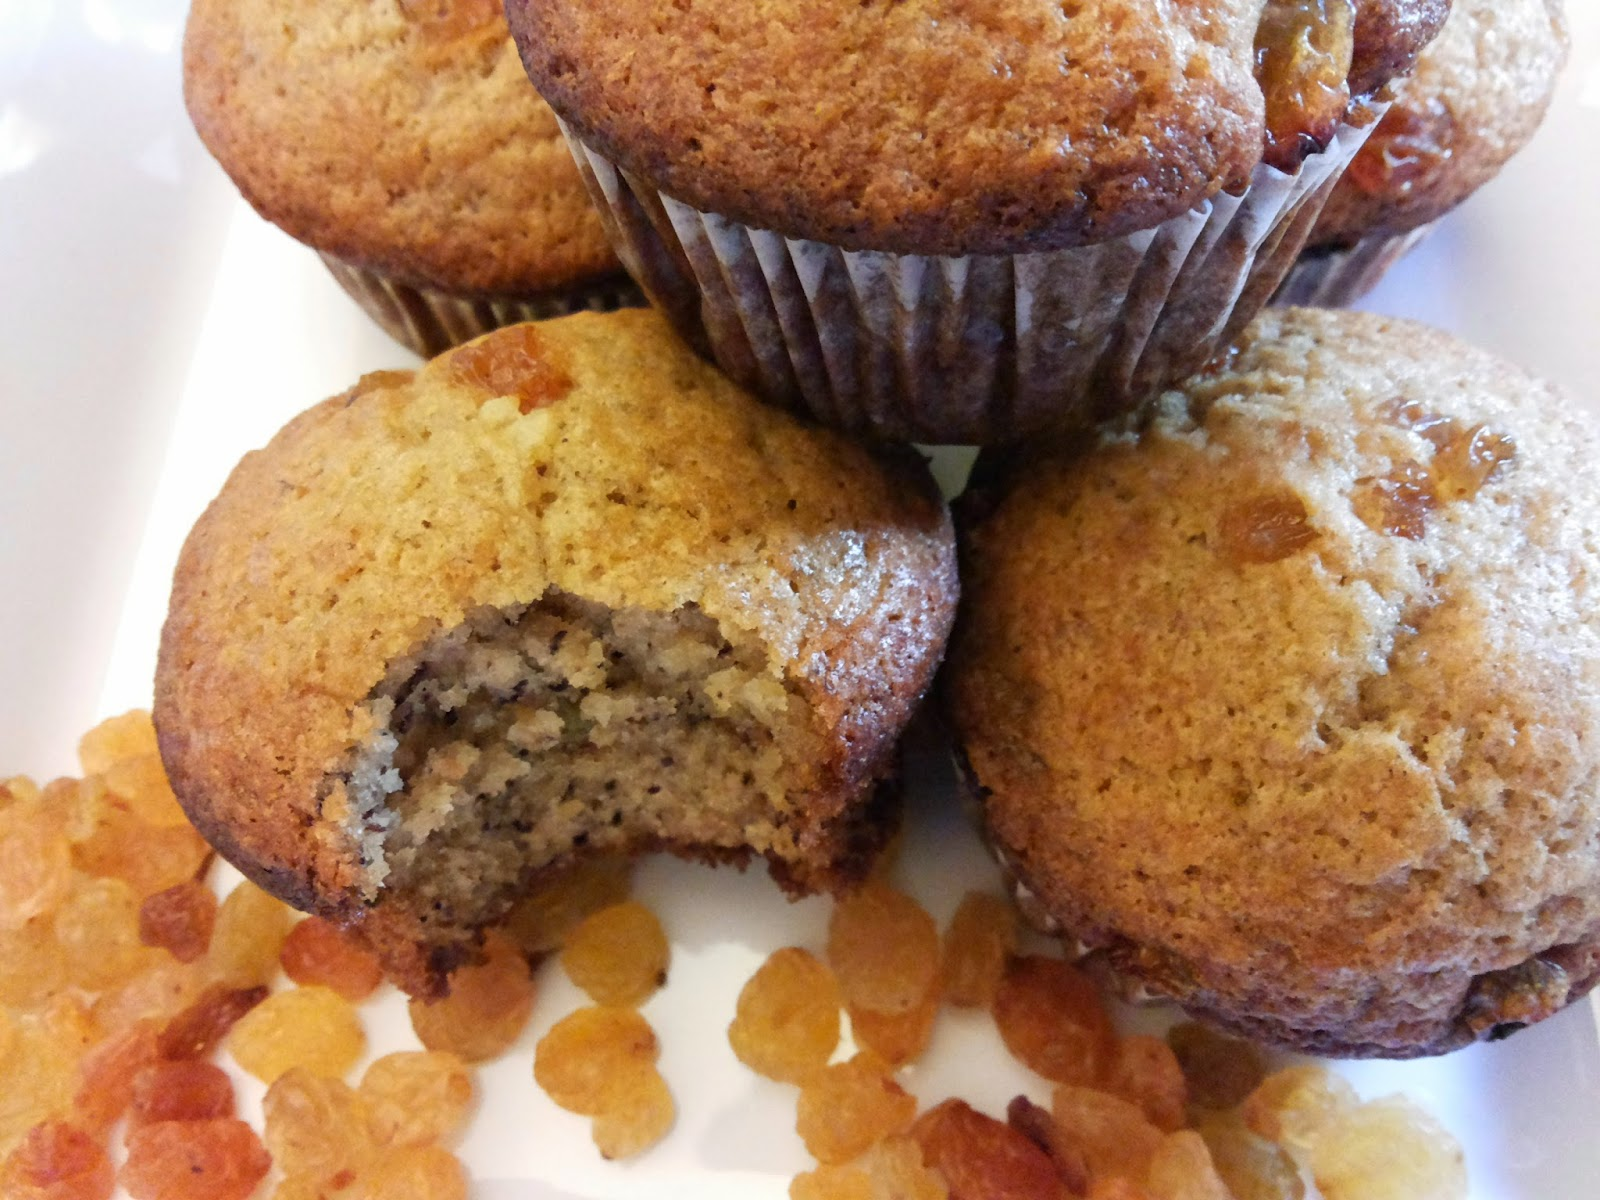 Raisins and cinnamon cupcakes